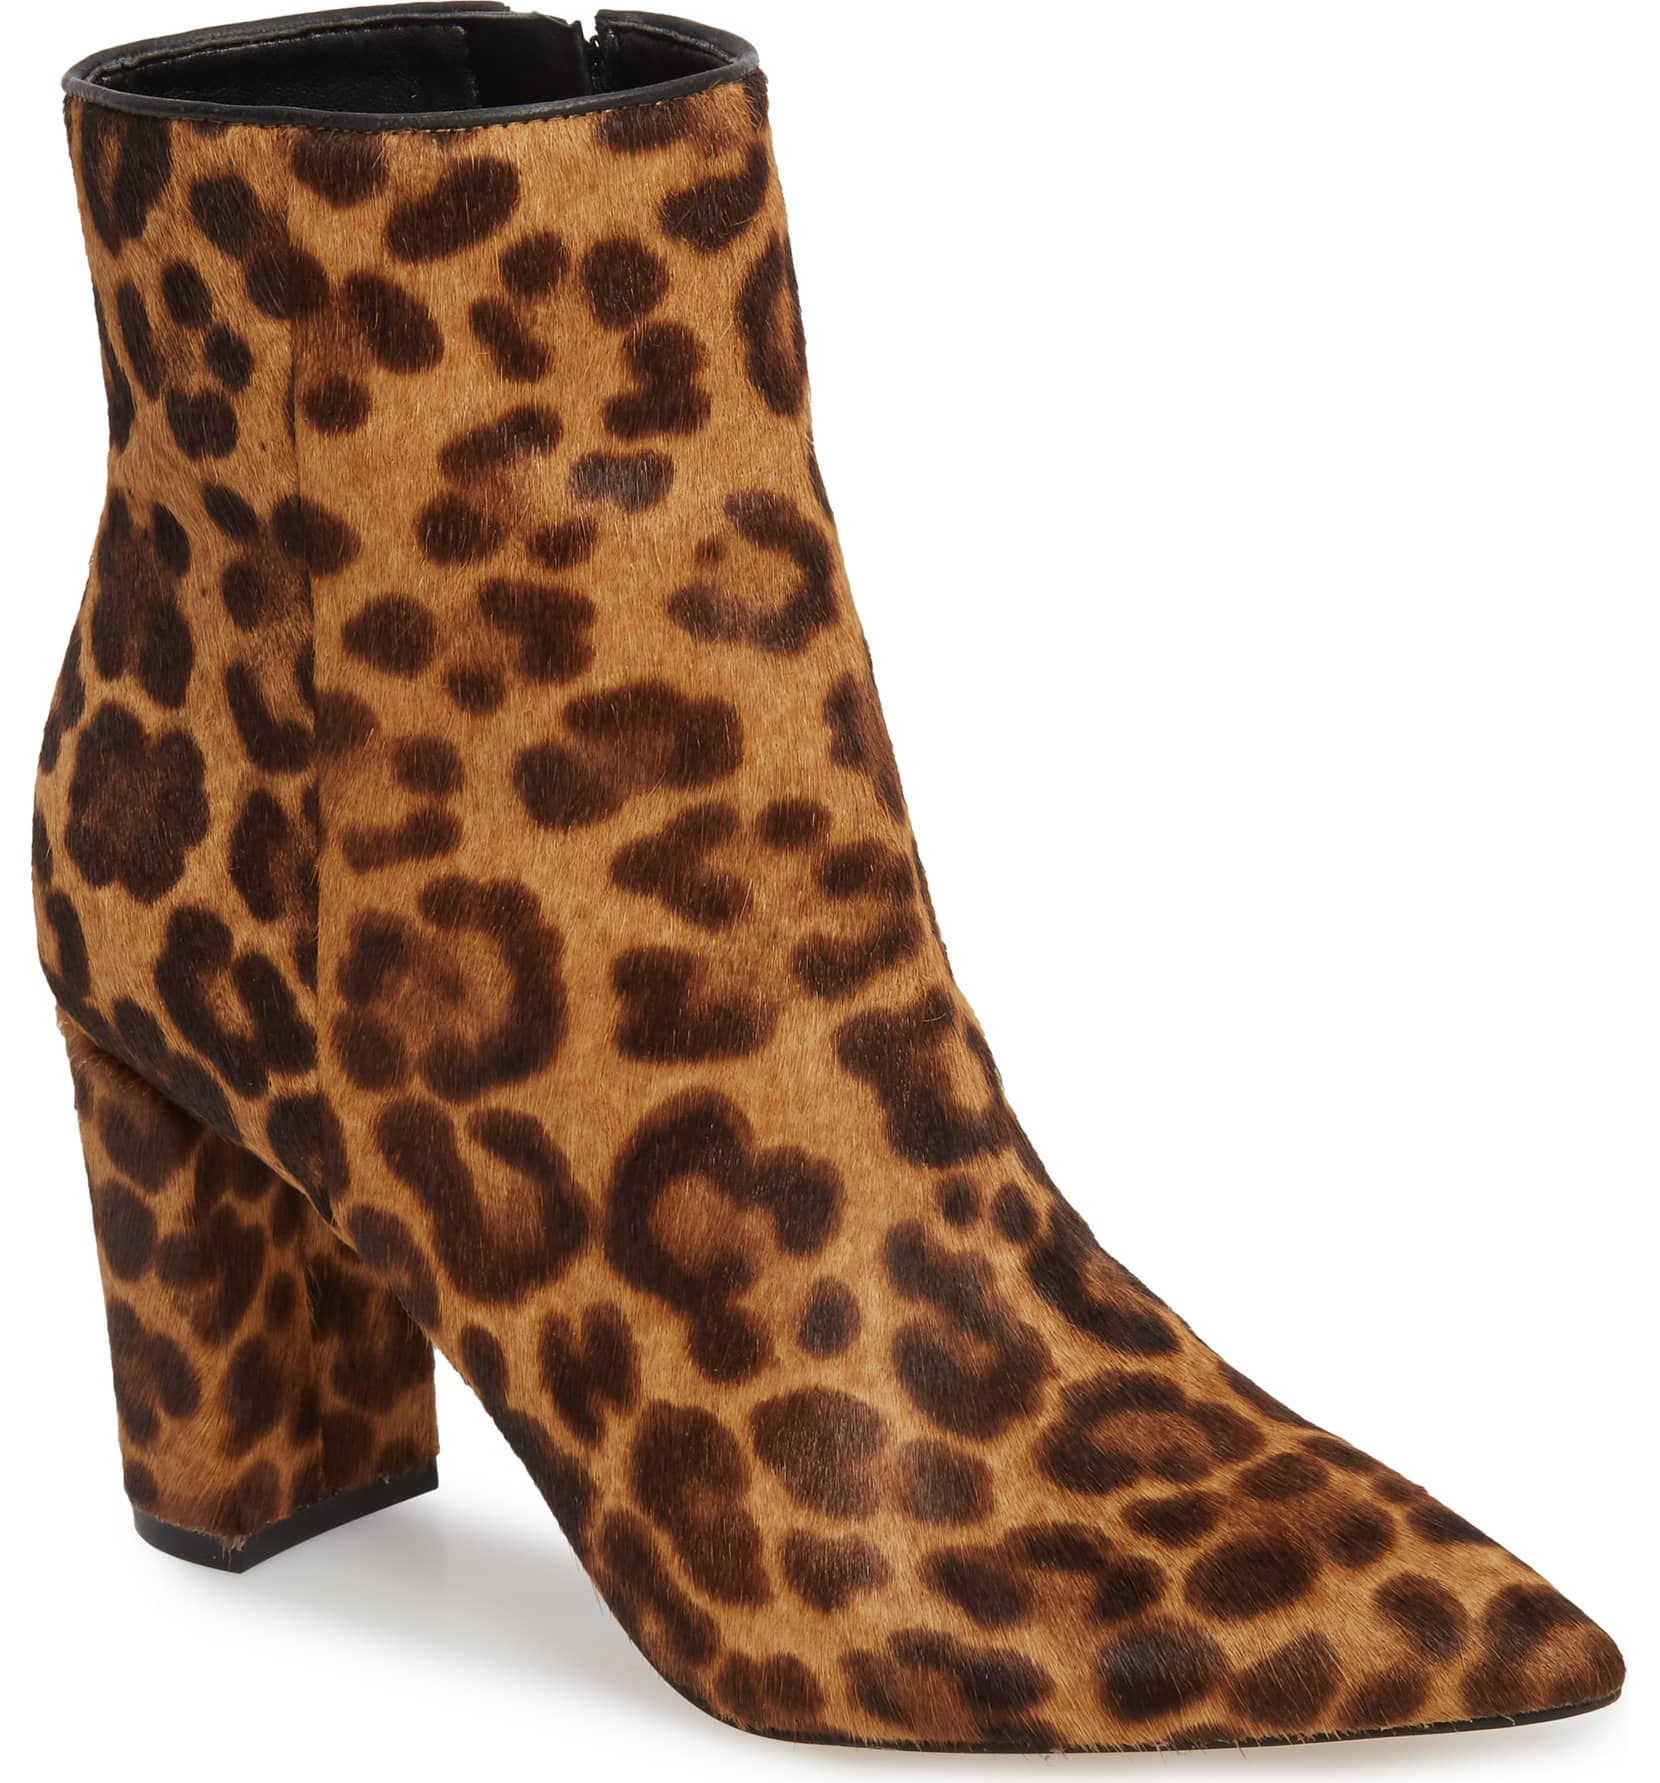 ccf7548c34ac Shop These Leopard Booties for a Wild Fashion Statement